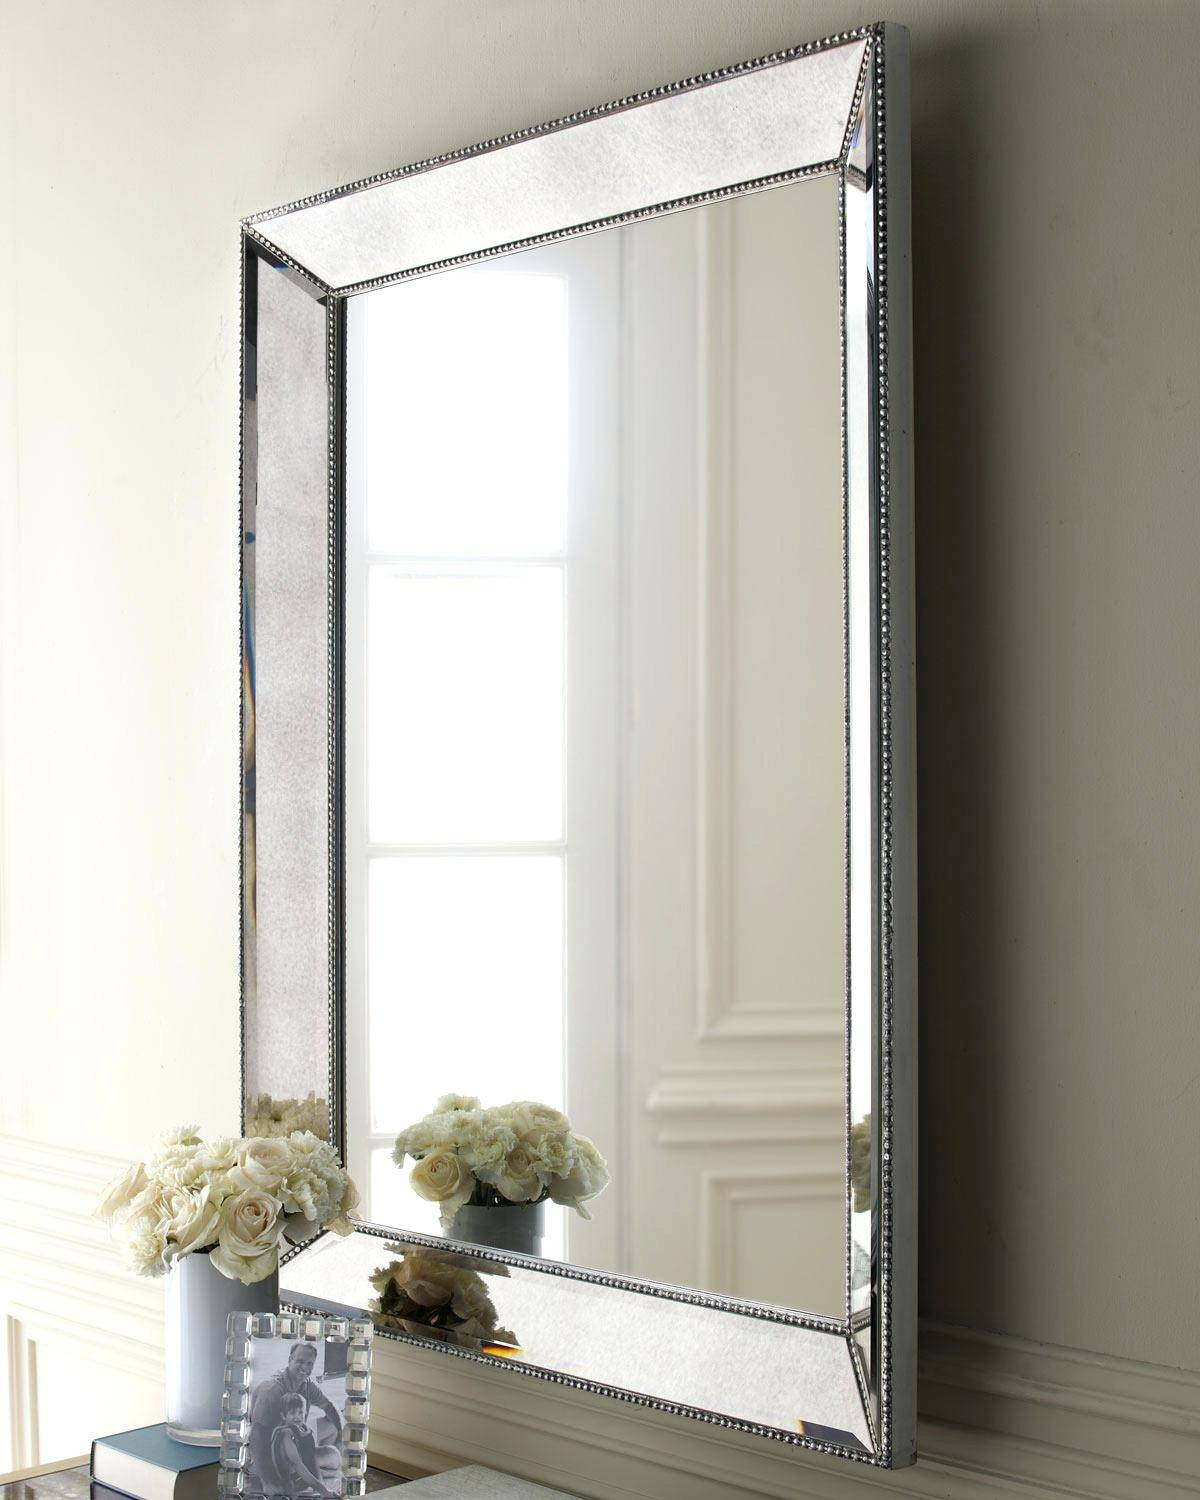 Mirrorlarge Round Frameless Wall Mirror Large – Shopwiz with Large Frameless Wall Mirrors (Image 19 of 25)